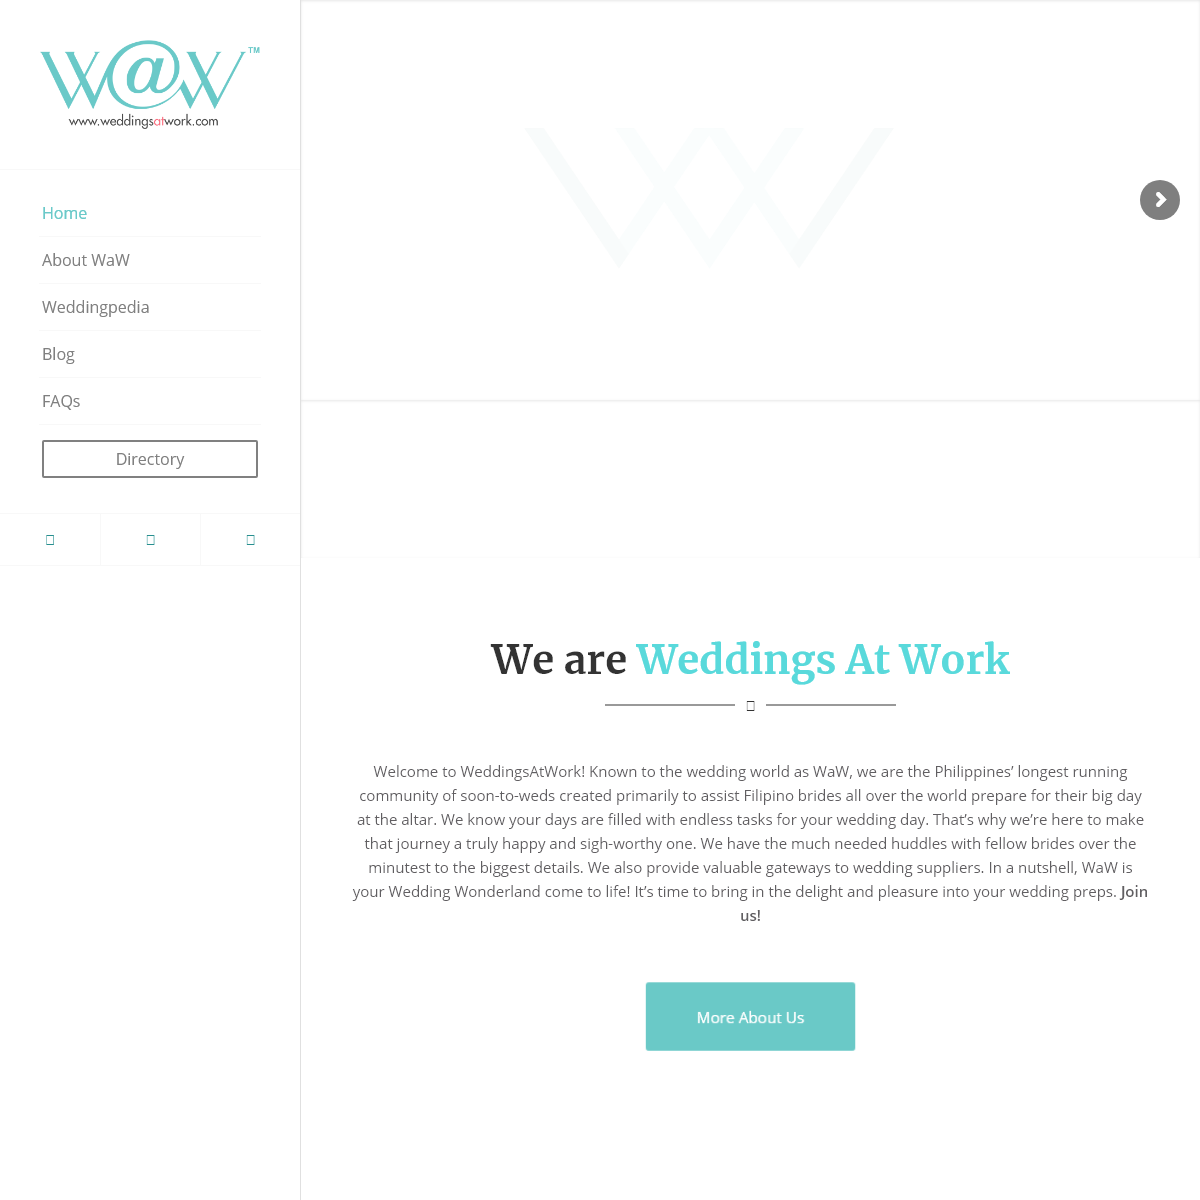 Weddings At Work – Leading online wedding resource for Filipino brides anywhere in the world.